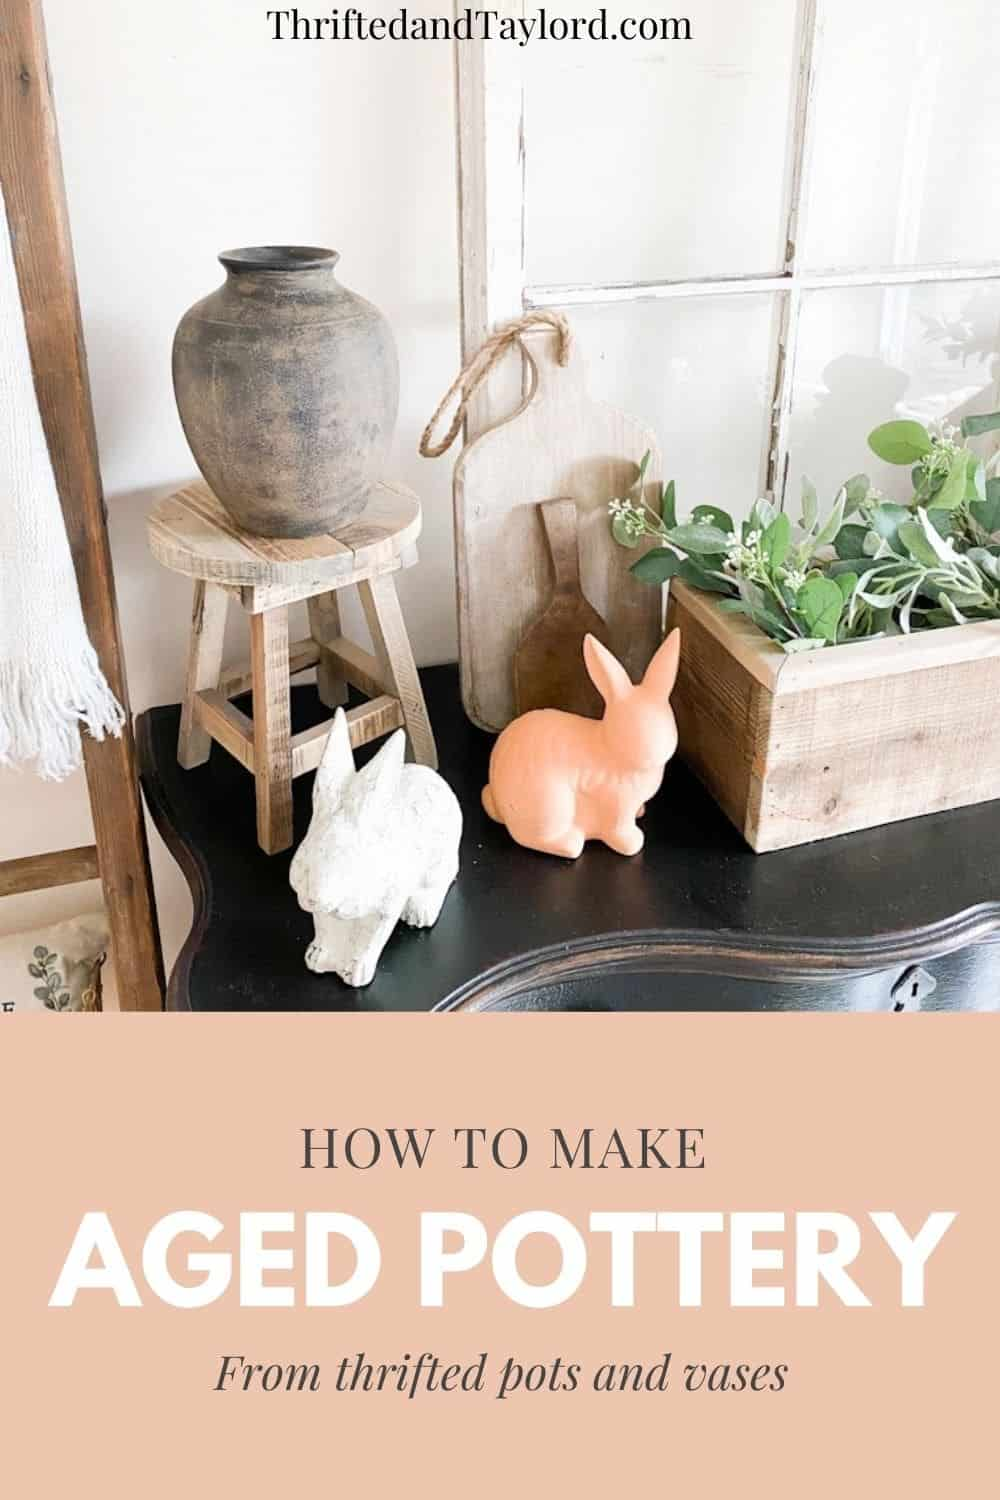 How to Make Your Upcycled Vases and Pots Look Like Aged Pottery